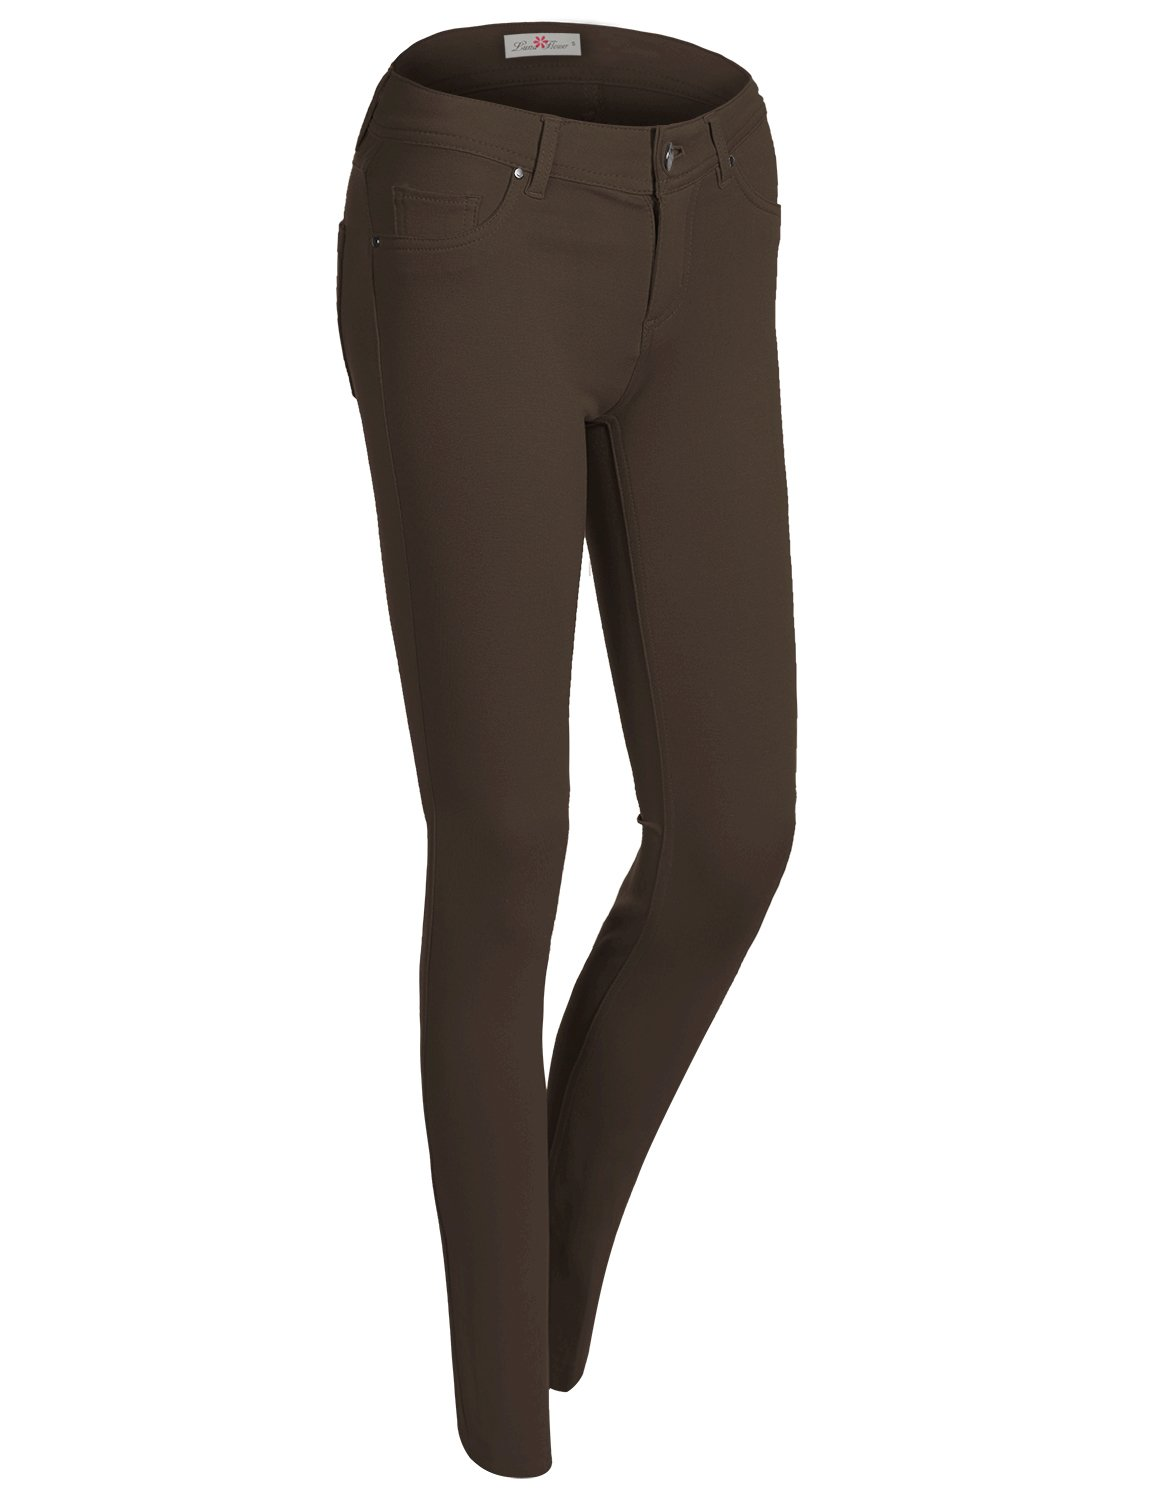 Plus Size Long Stretchy Solid Color Jegging Pants 032-Brown US 3XL